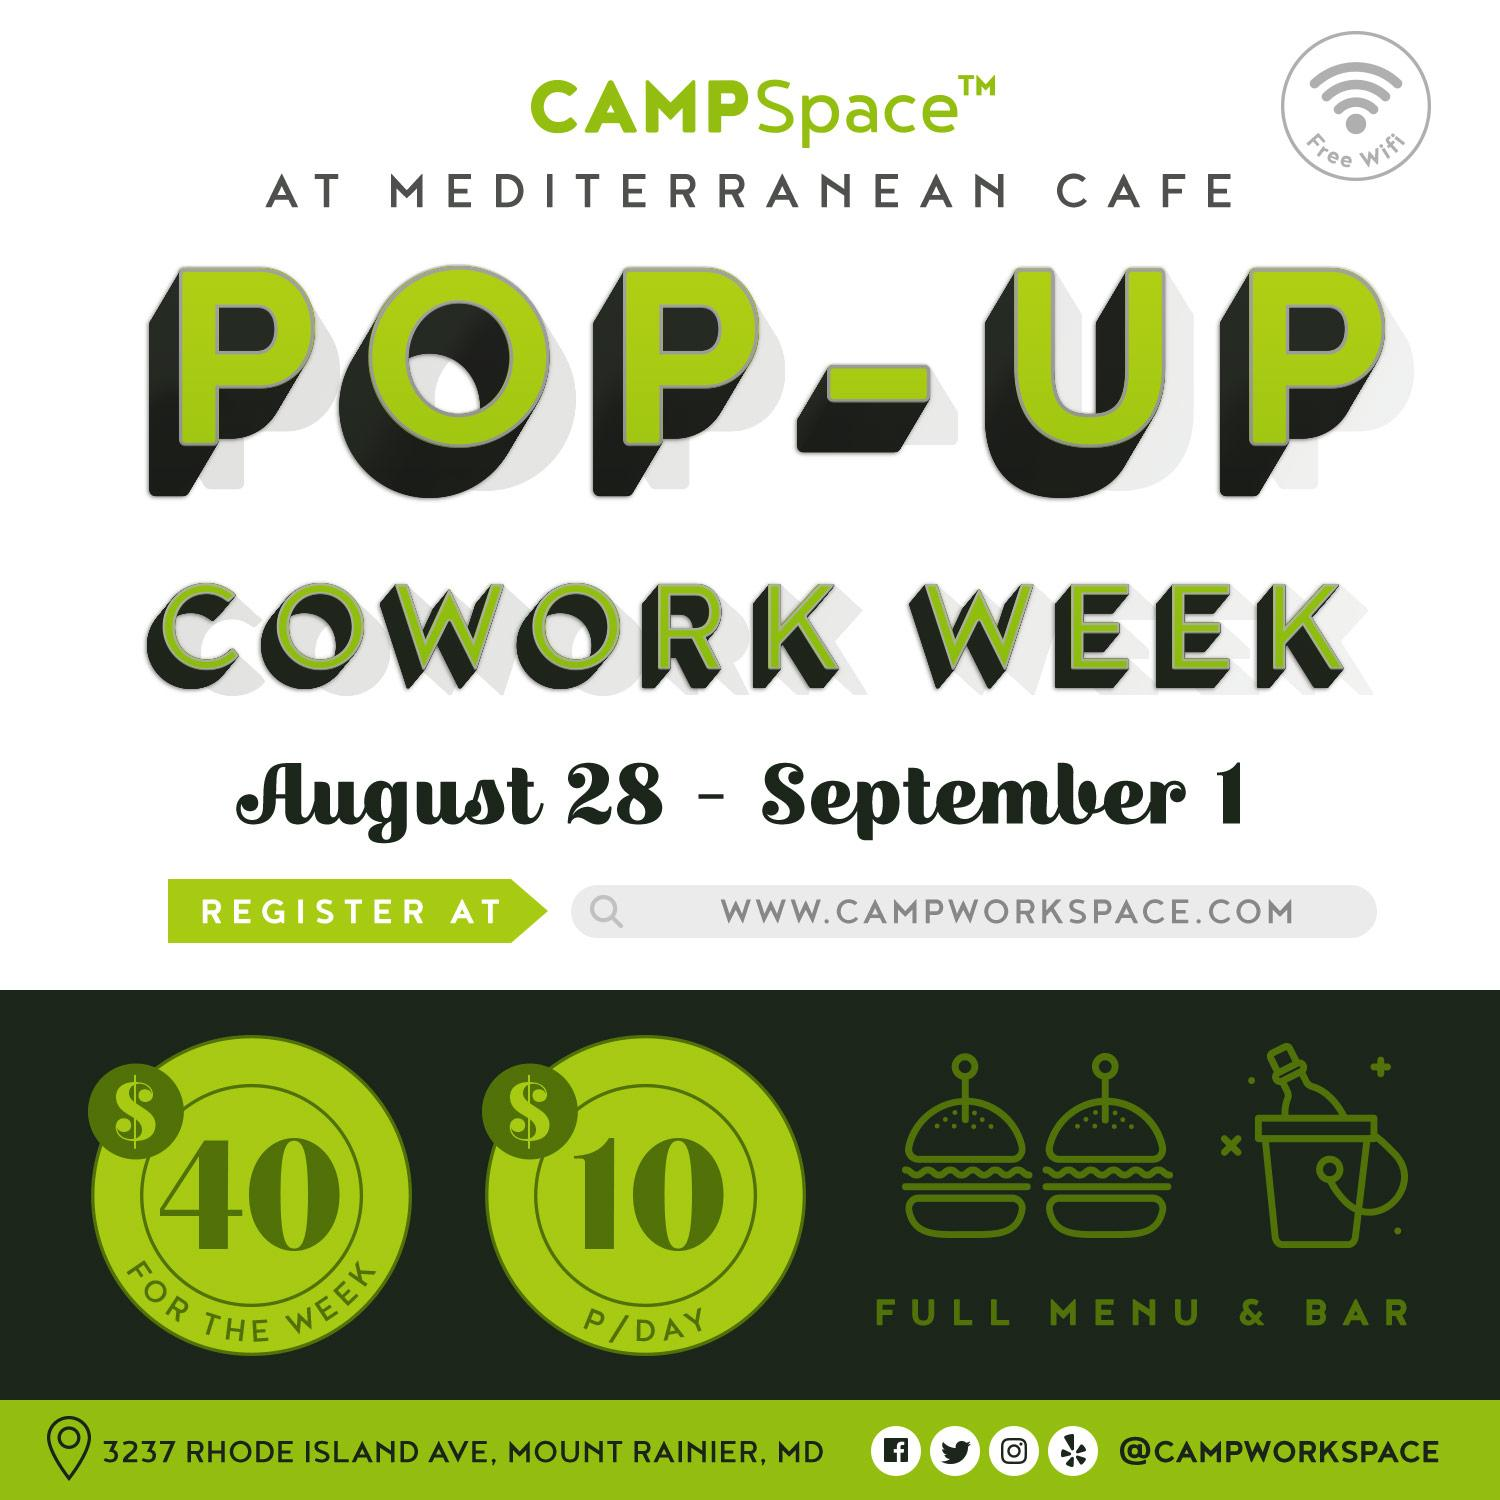 campspace® pop-up cowork week @ mediterranean cafe, mount rainier